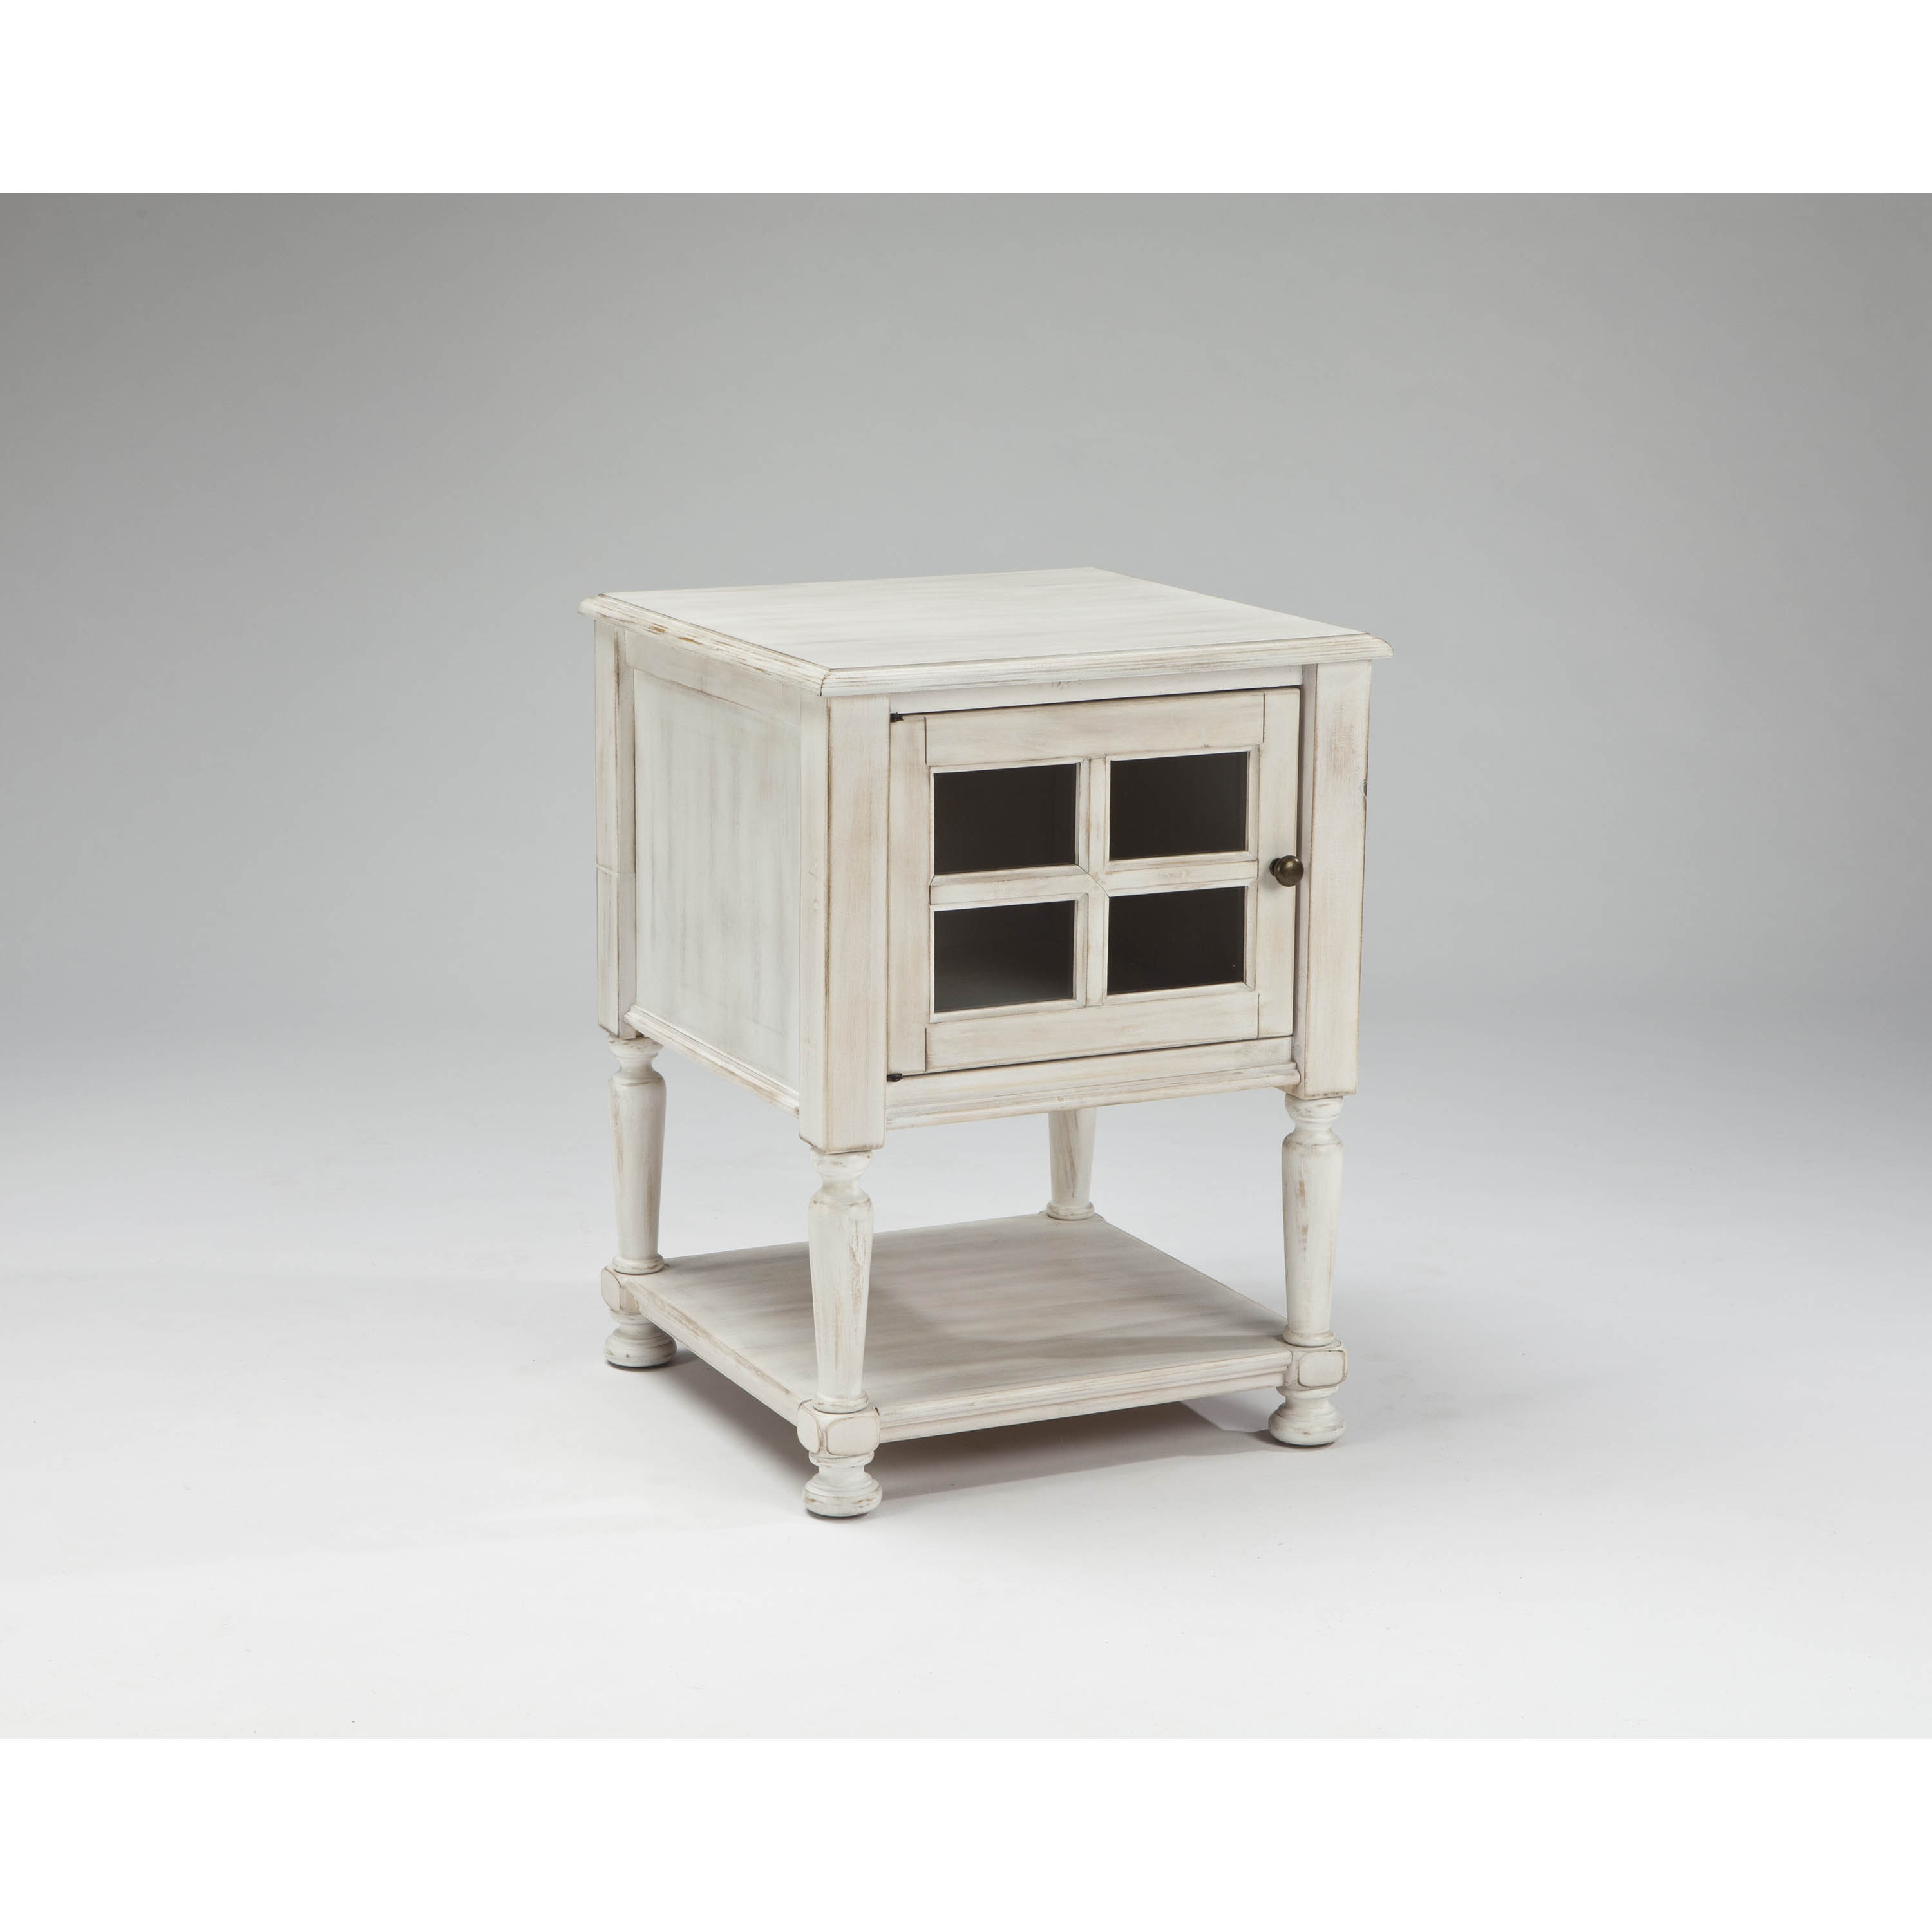 signature design ashley mirimyn white chair side end table linon galway accent free shipping today walnut trestle dining bar stools uttermost gin cube plastic frame target kitchen